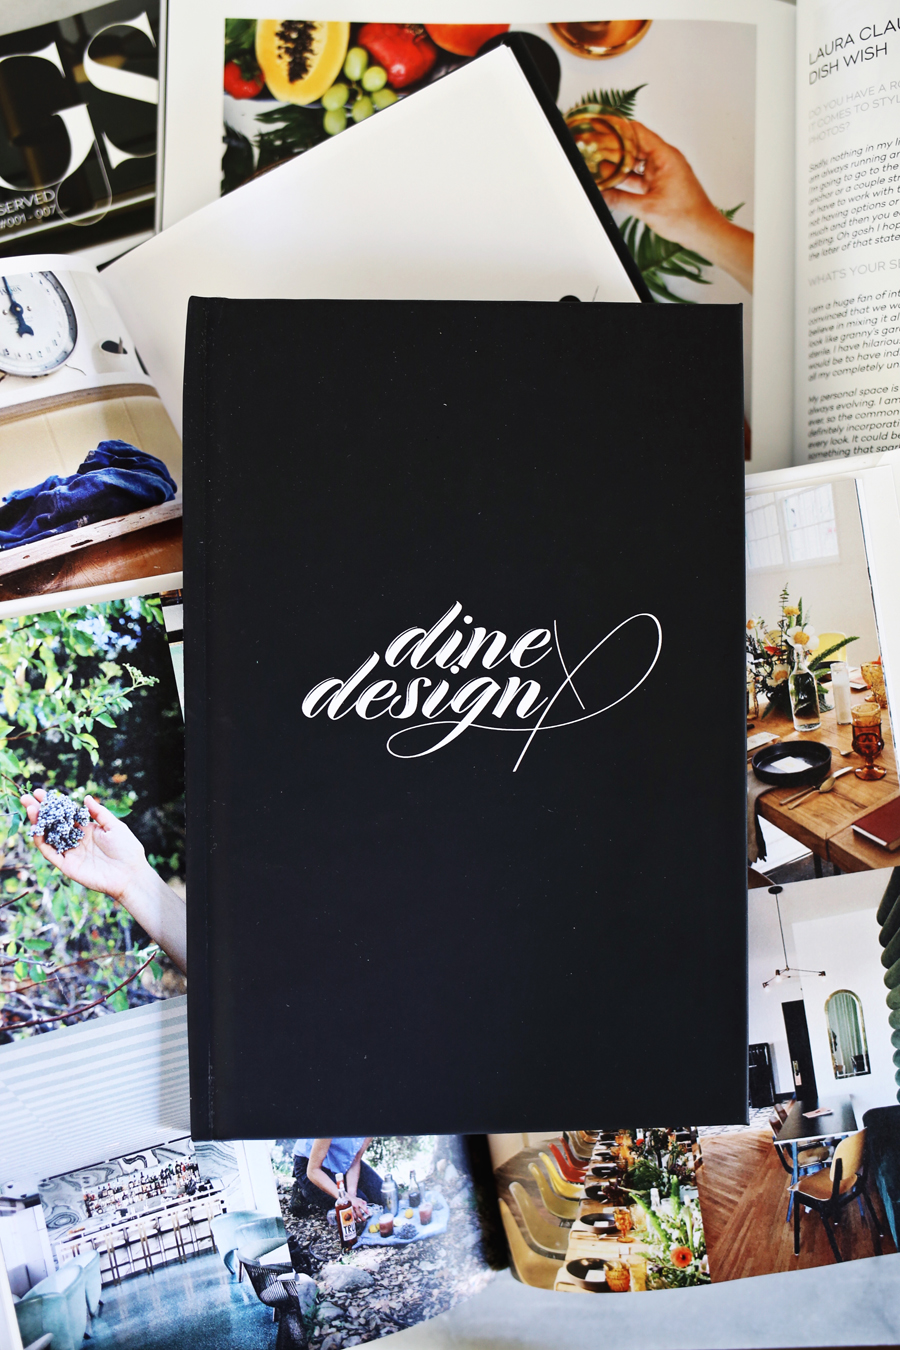 Dine X Design Turns Two | Blurb Books